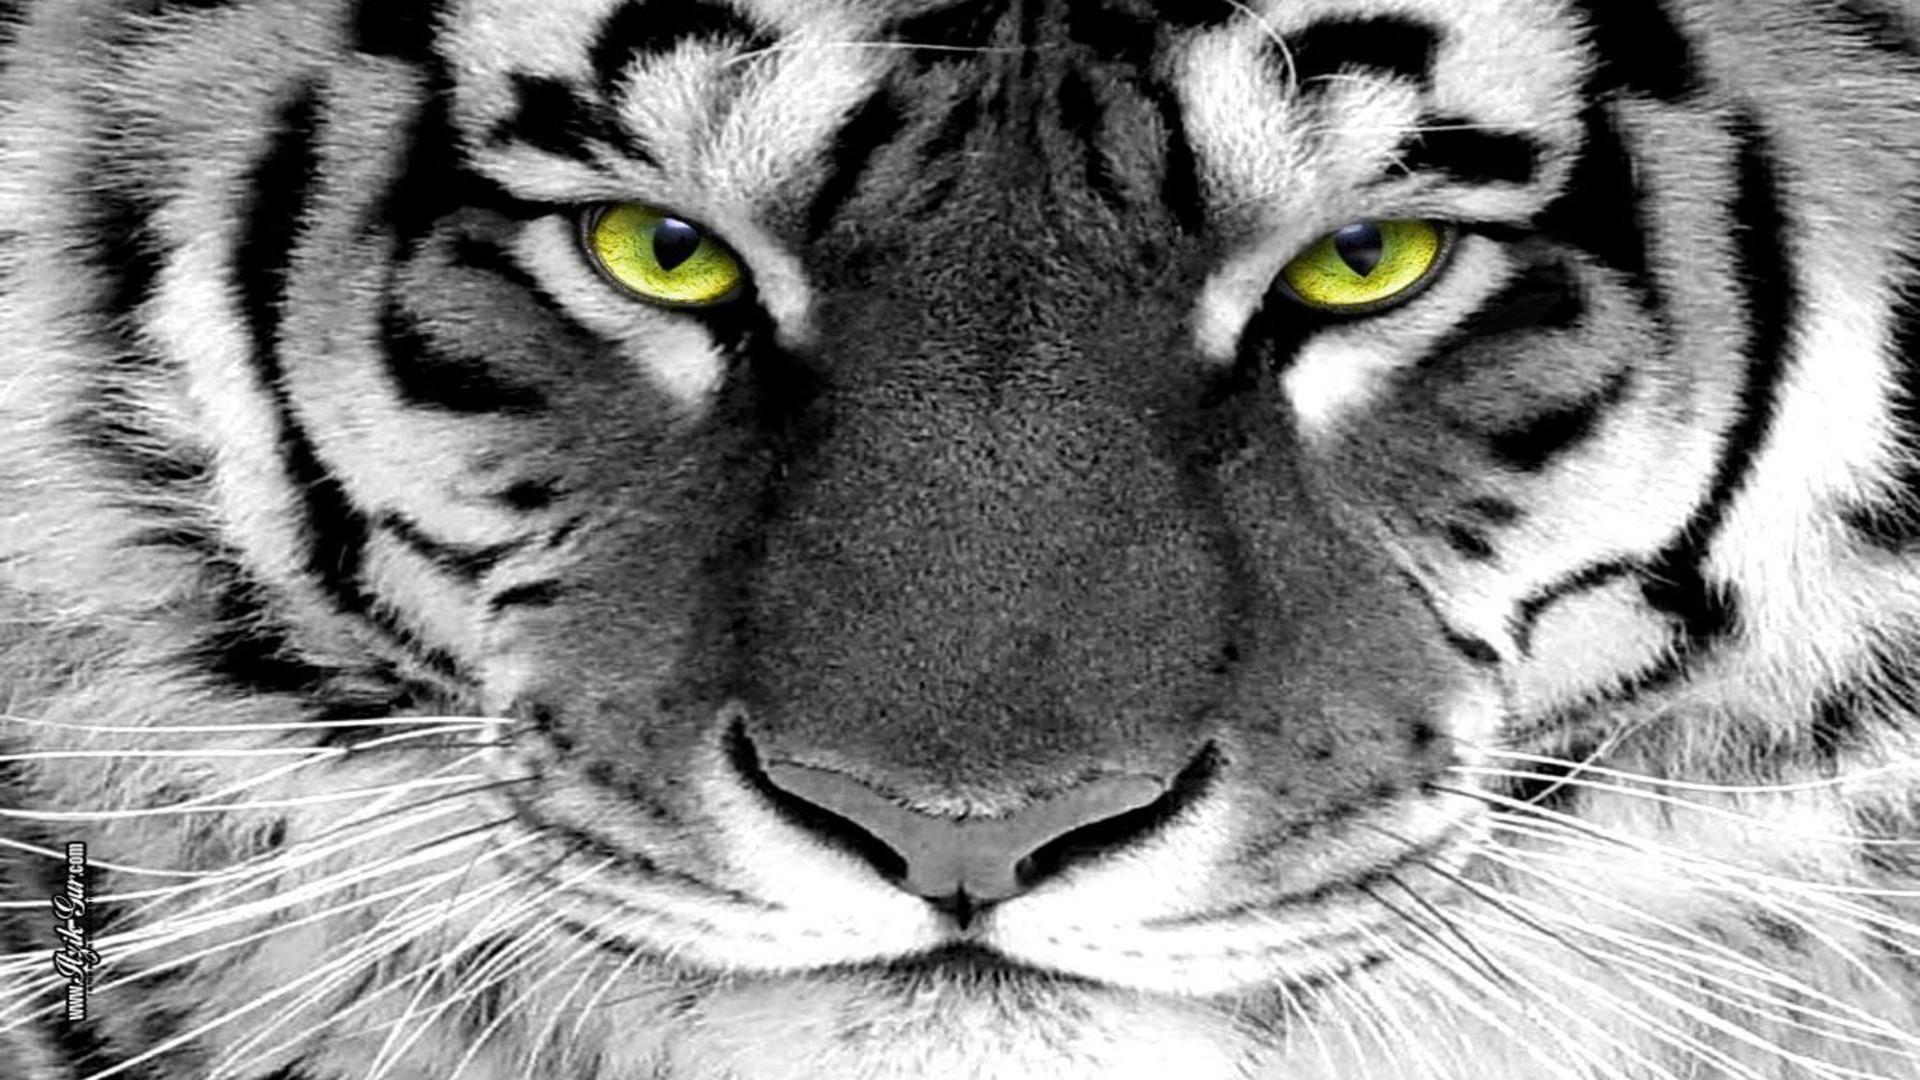 White Tigers With Green Eyes | www.pixshark.com - Images ...